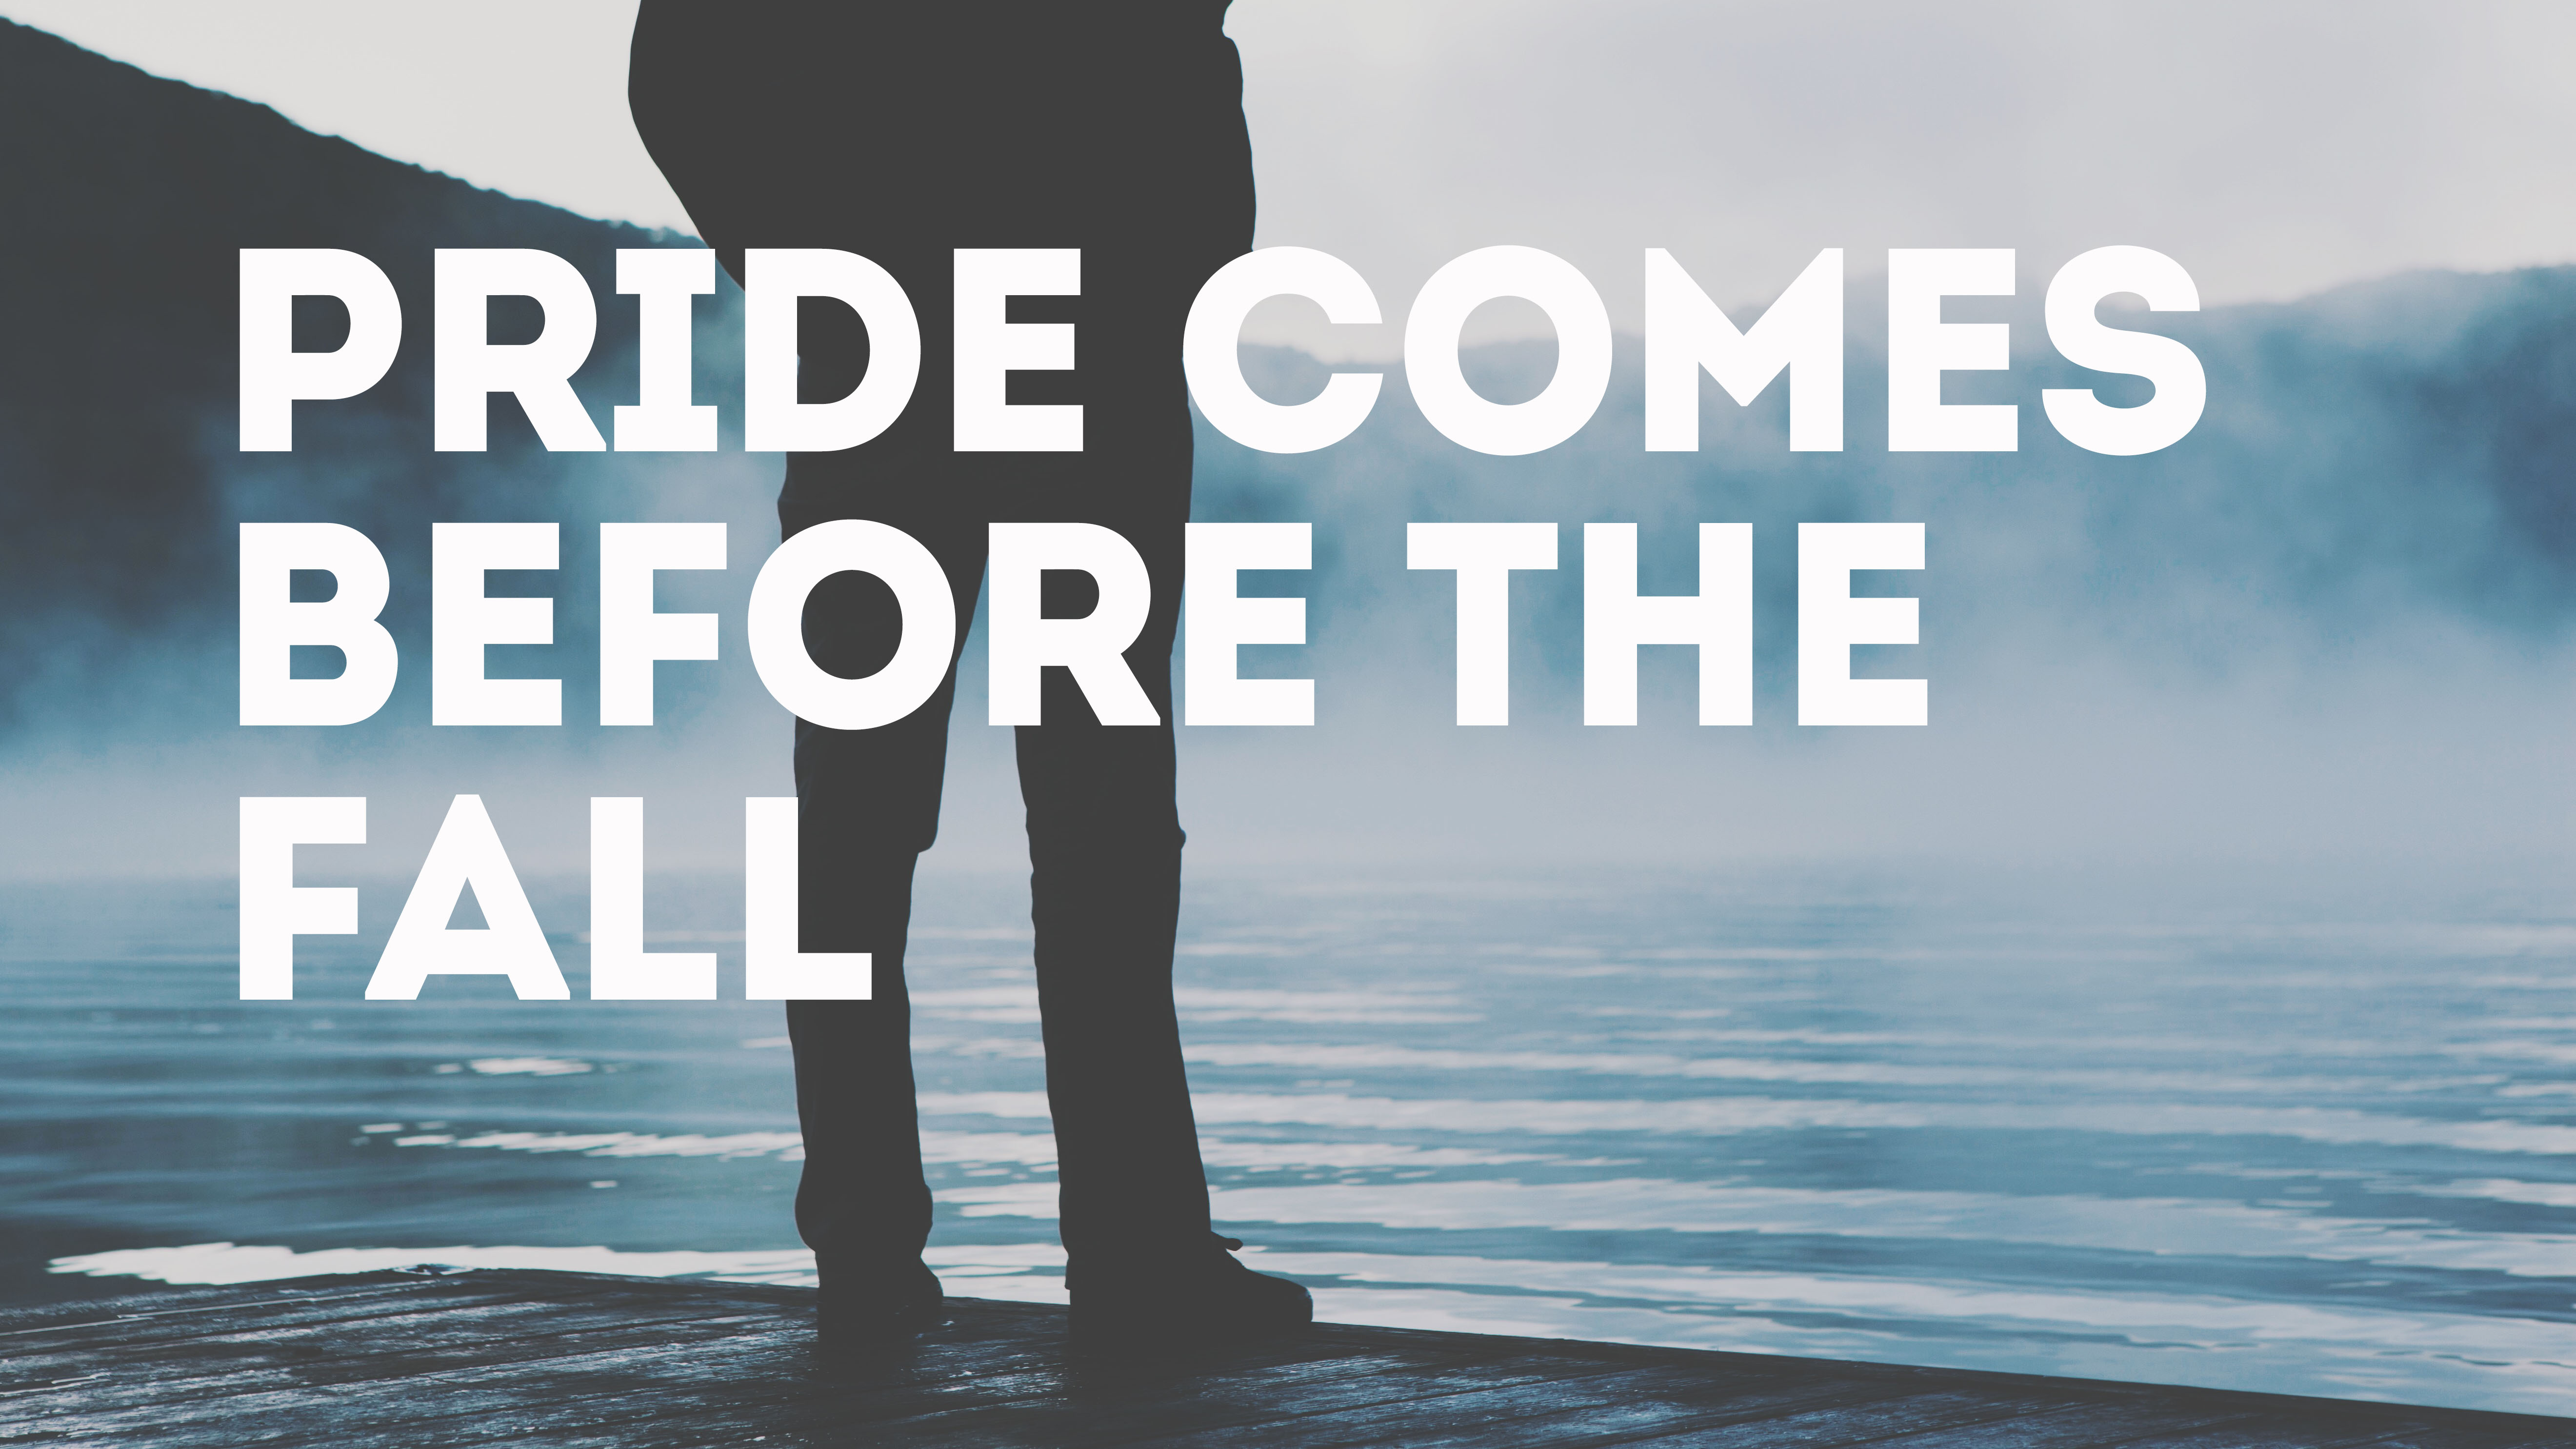 pride comes before fall This page is about the saying pride comes before a fall possible meaning: if we are too proud about ourselves or something, we will probably meet with failure or disaster when we are too self-important or conceited, something is sure to happen to make us look foolish.